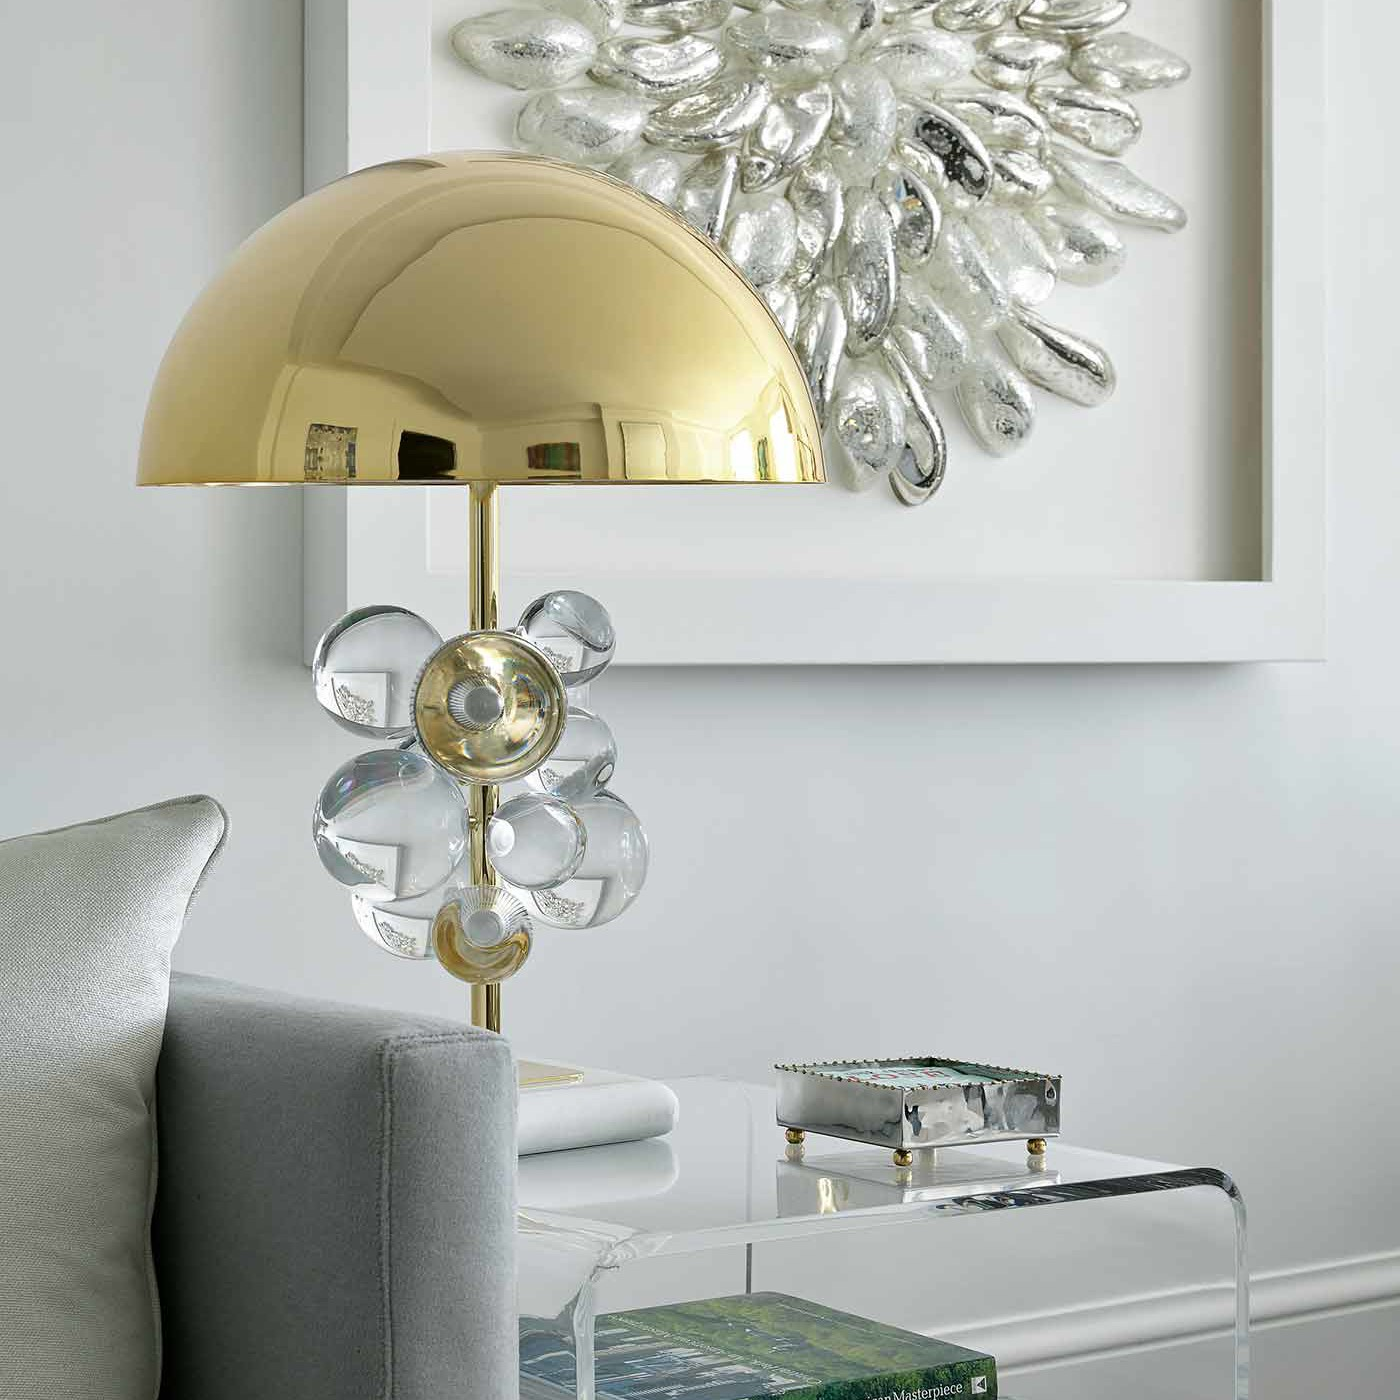 NYC apartment living room interior design with fun, funky accessories, lighting and accent furnishings